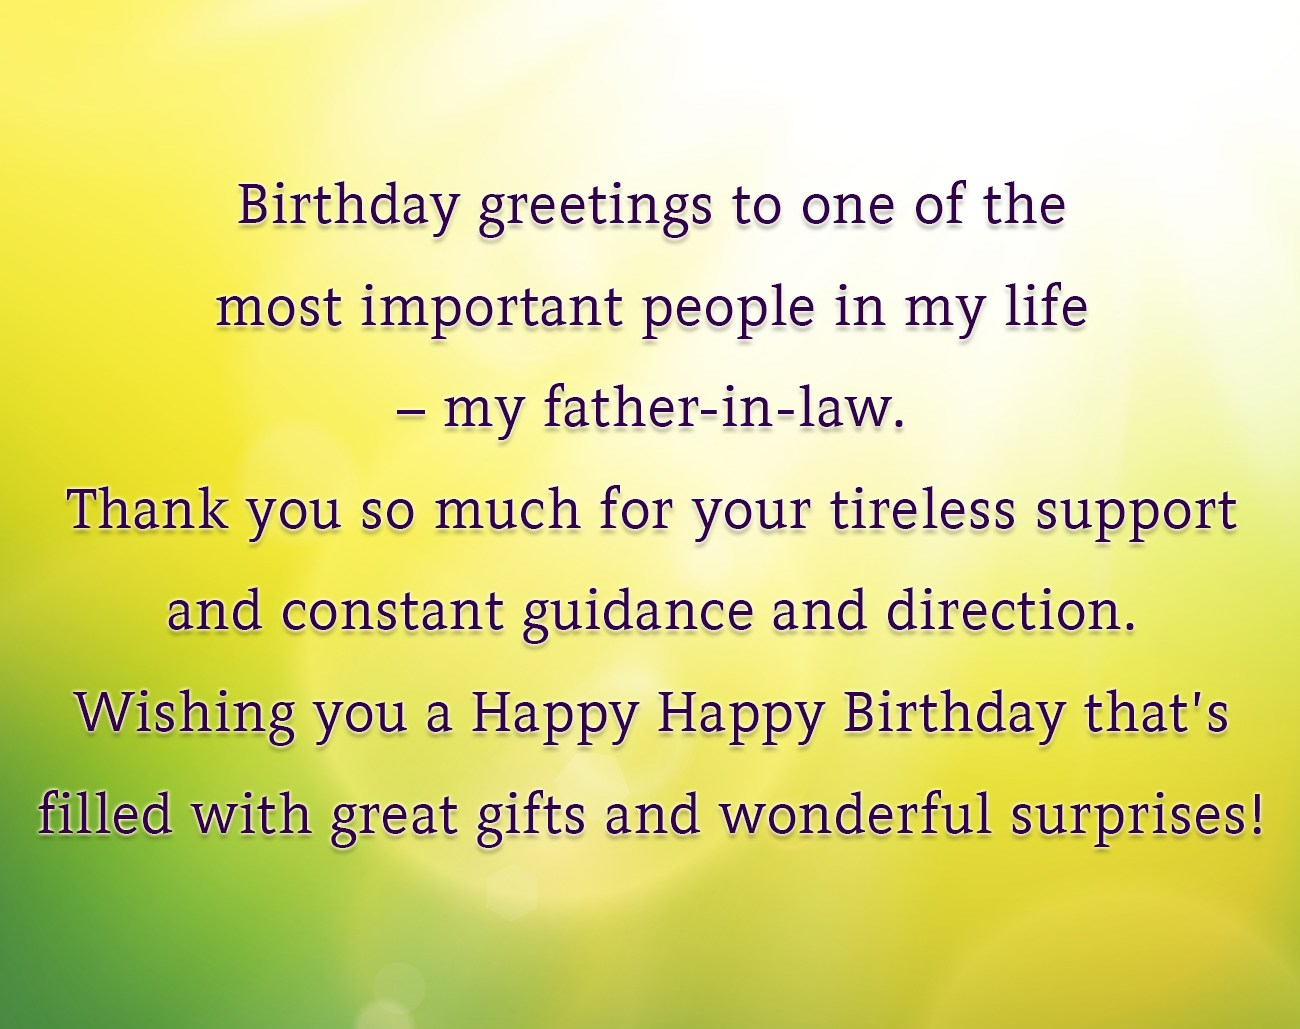 Birthday Greetings To One Of The Most Important People